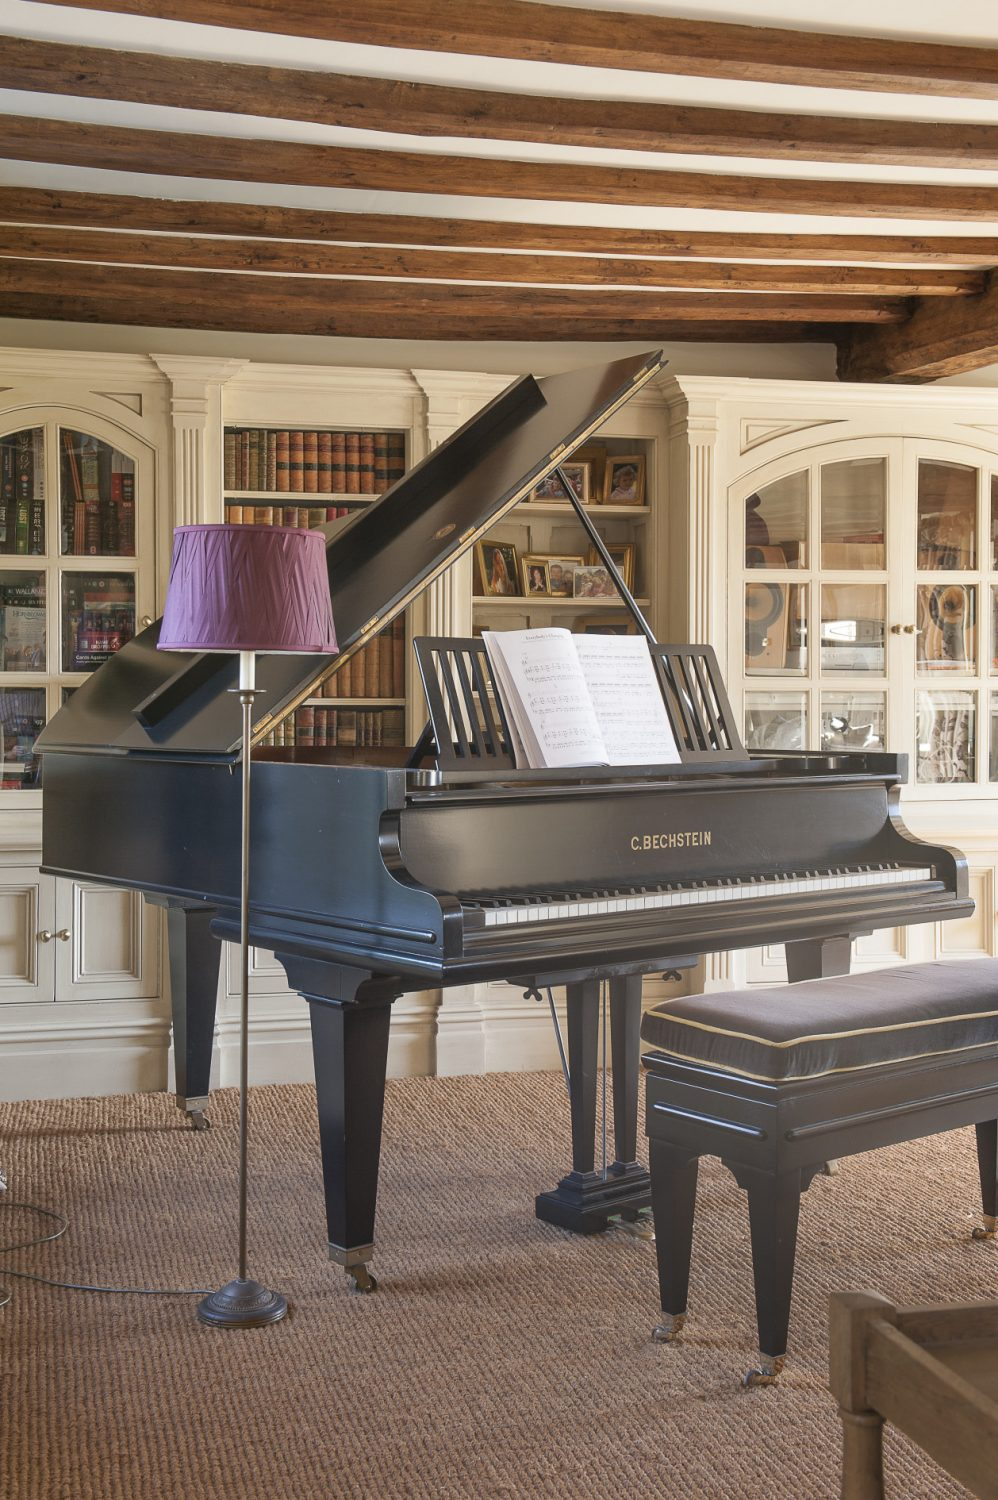 In front of a bookcase that spans one wall of the drawing room stands an impressive grand piano